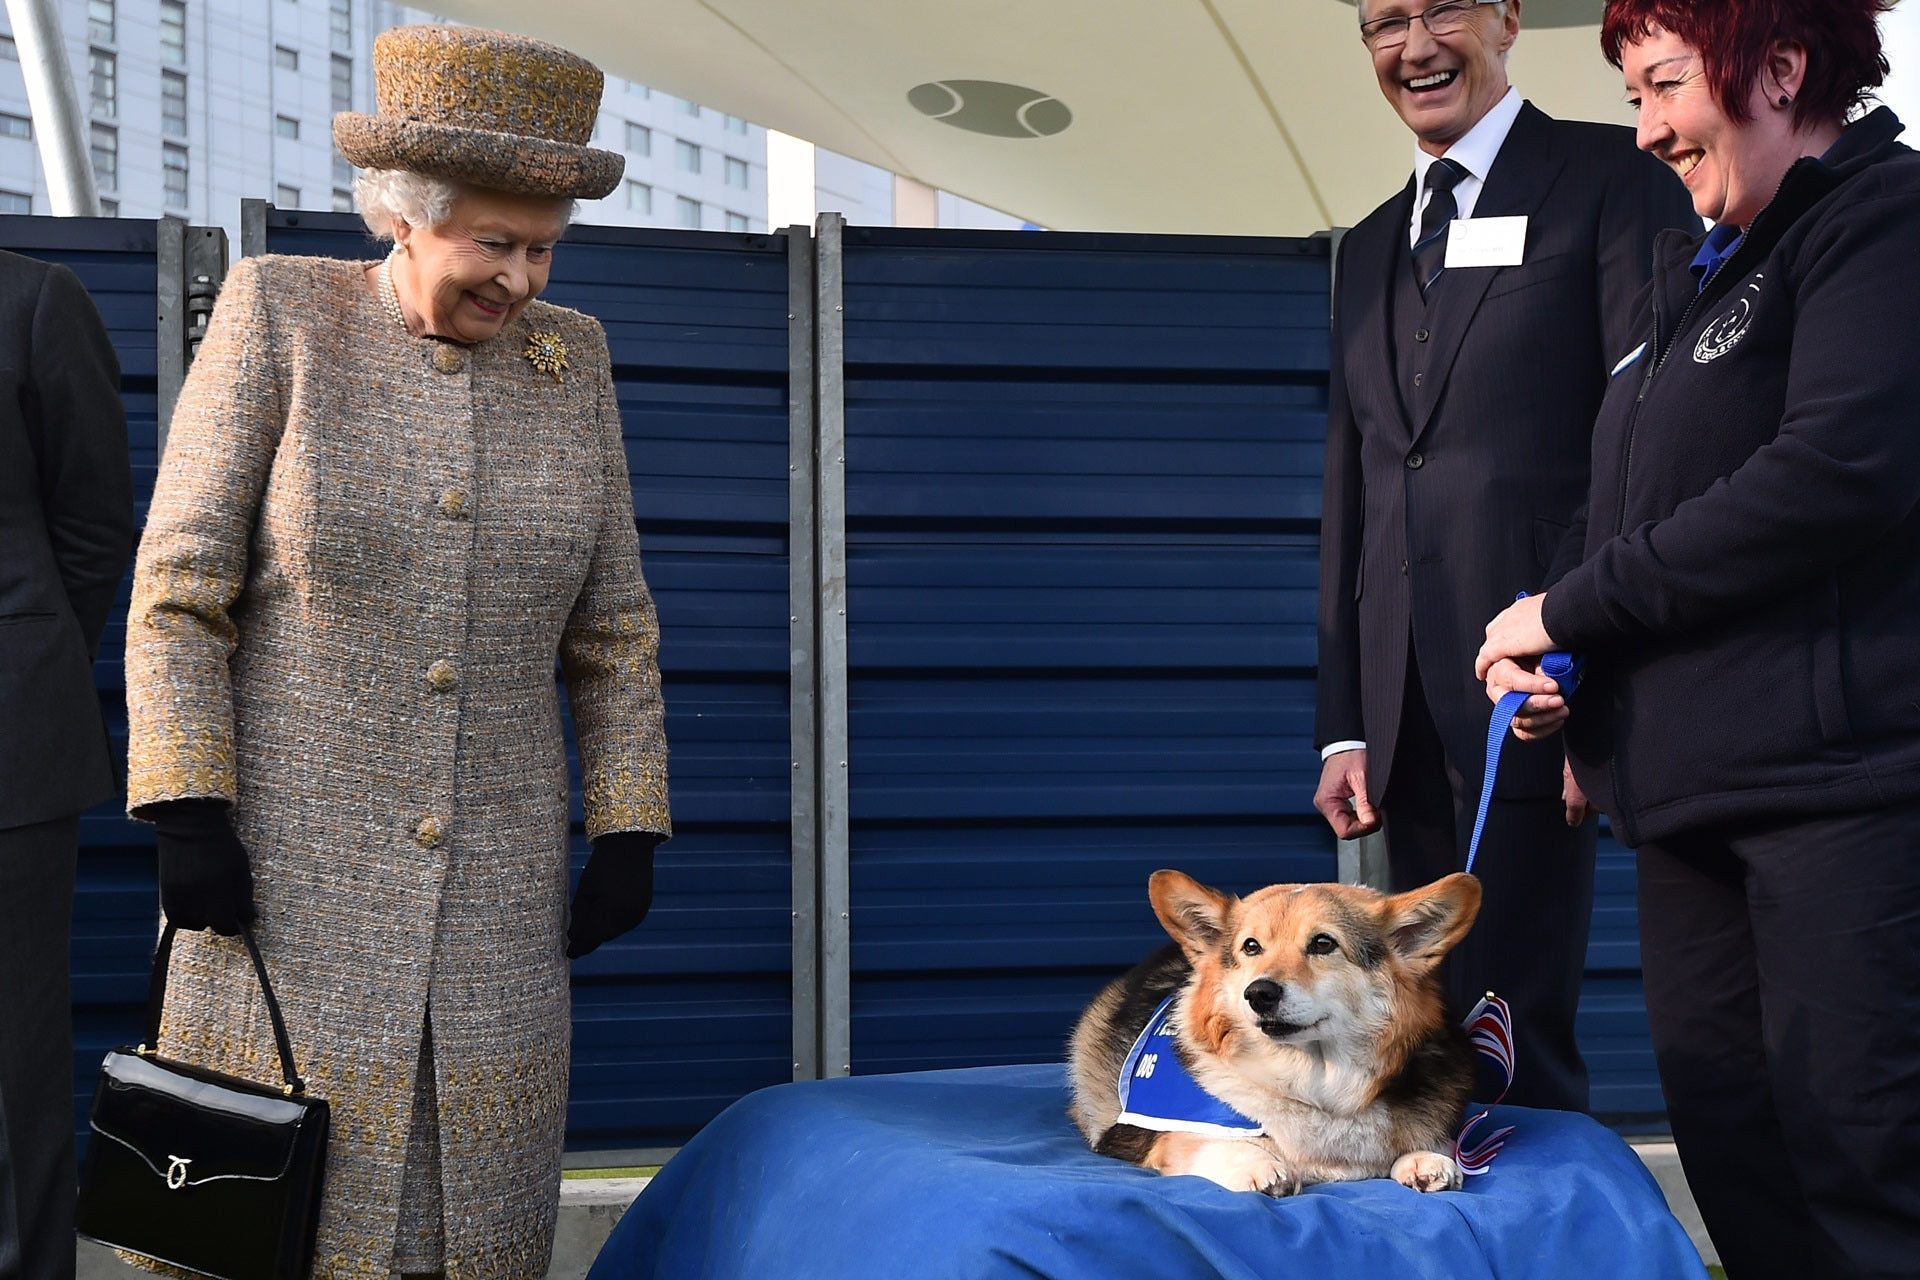 Queen Elizabeth II's last remaining corgi has died